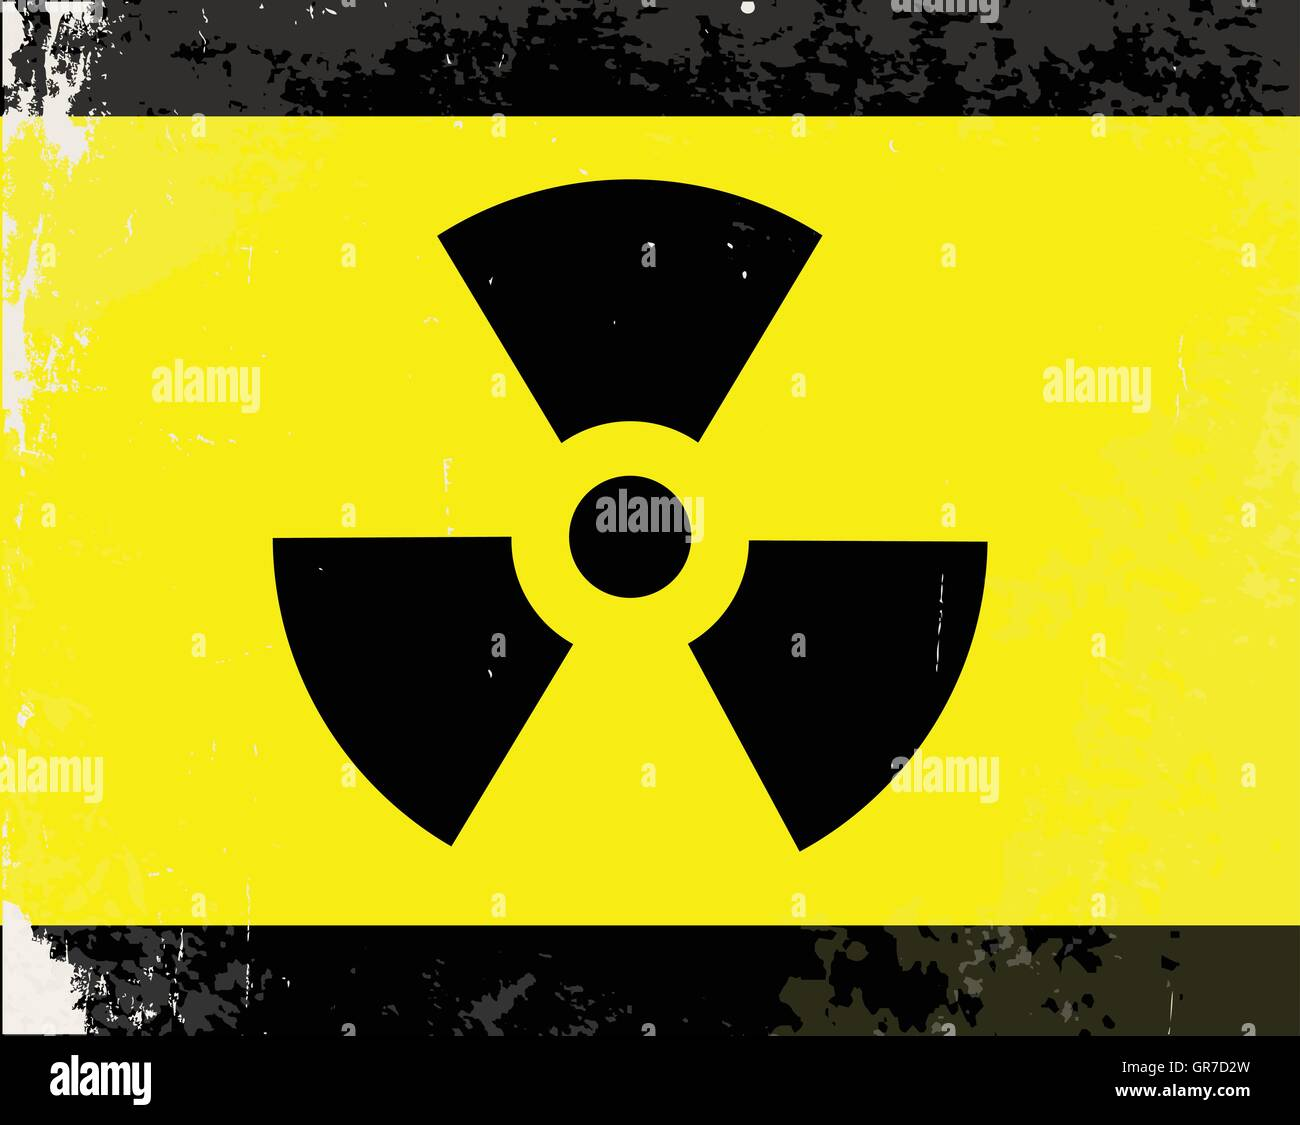 A worn Caution Radiation symbol in yellow and black - Stock Vector